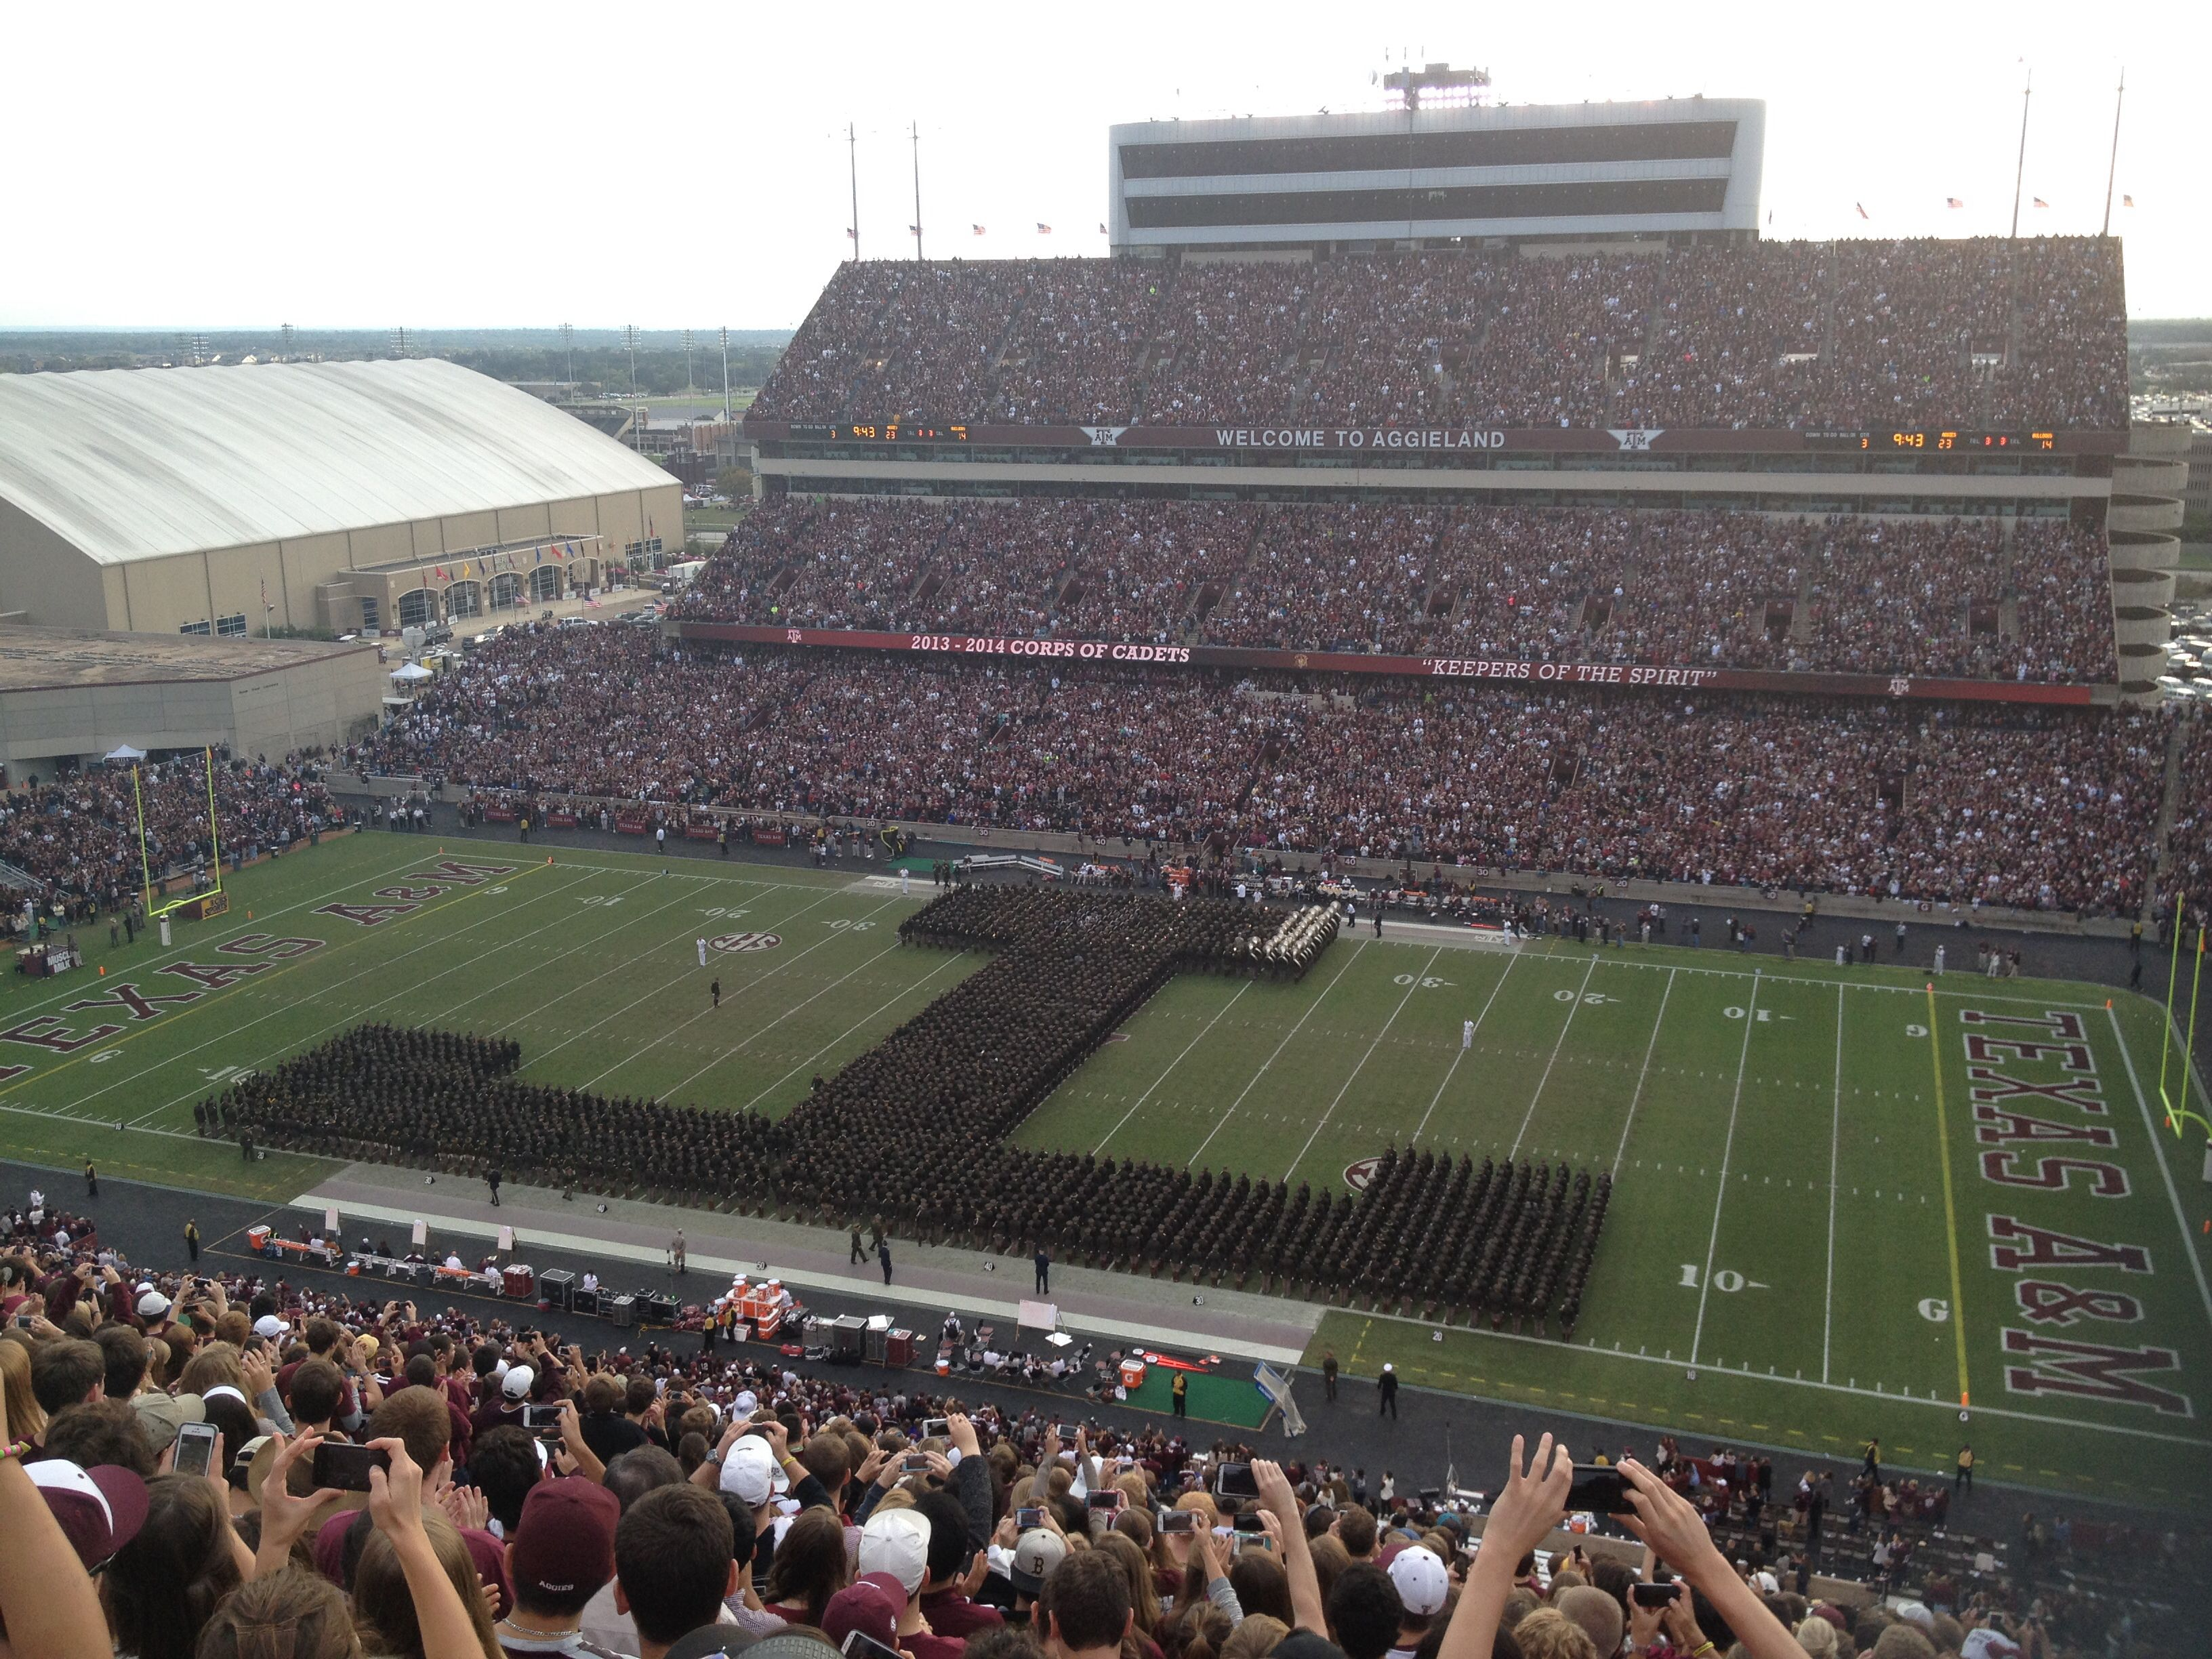 Fighting Texas Aggie corps of cadets! I was there for this!